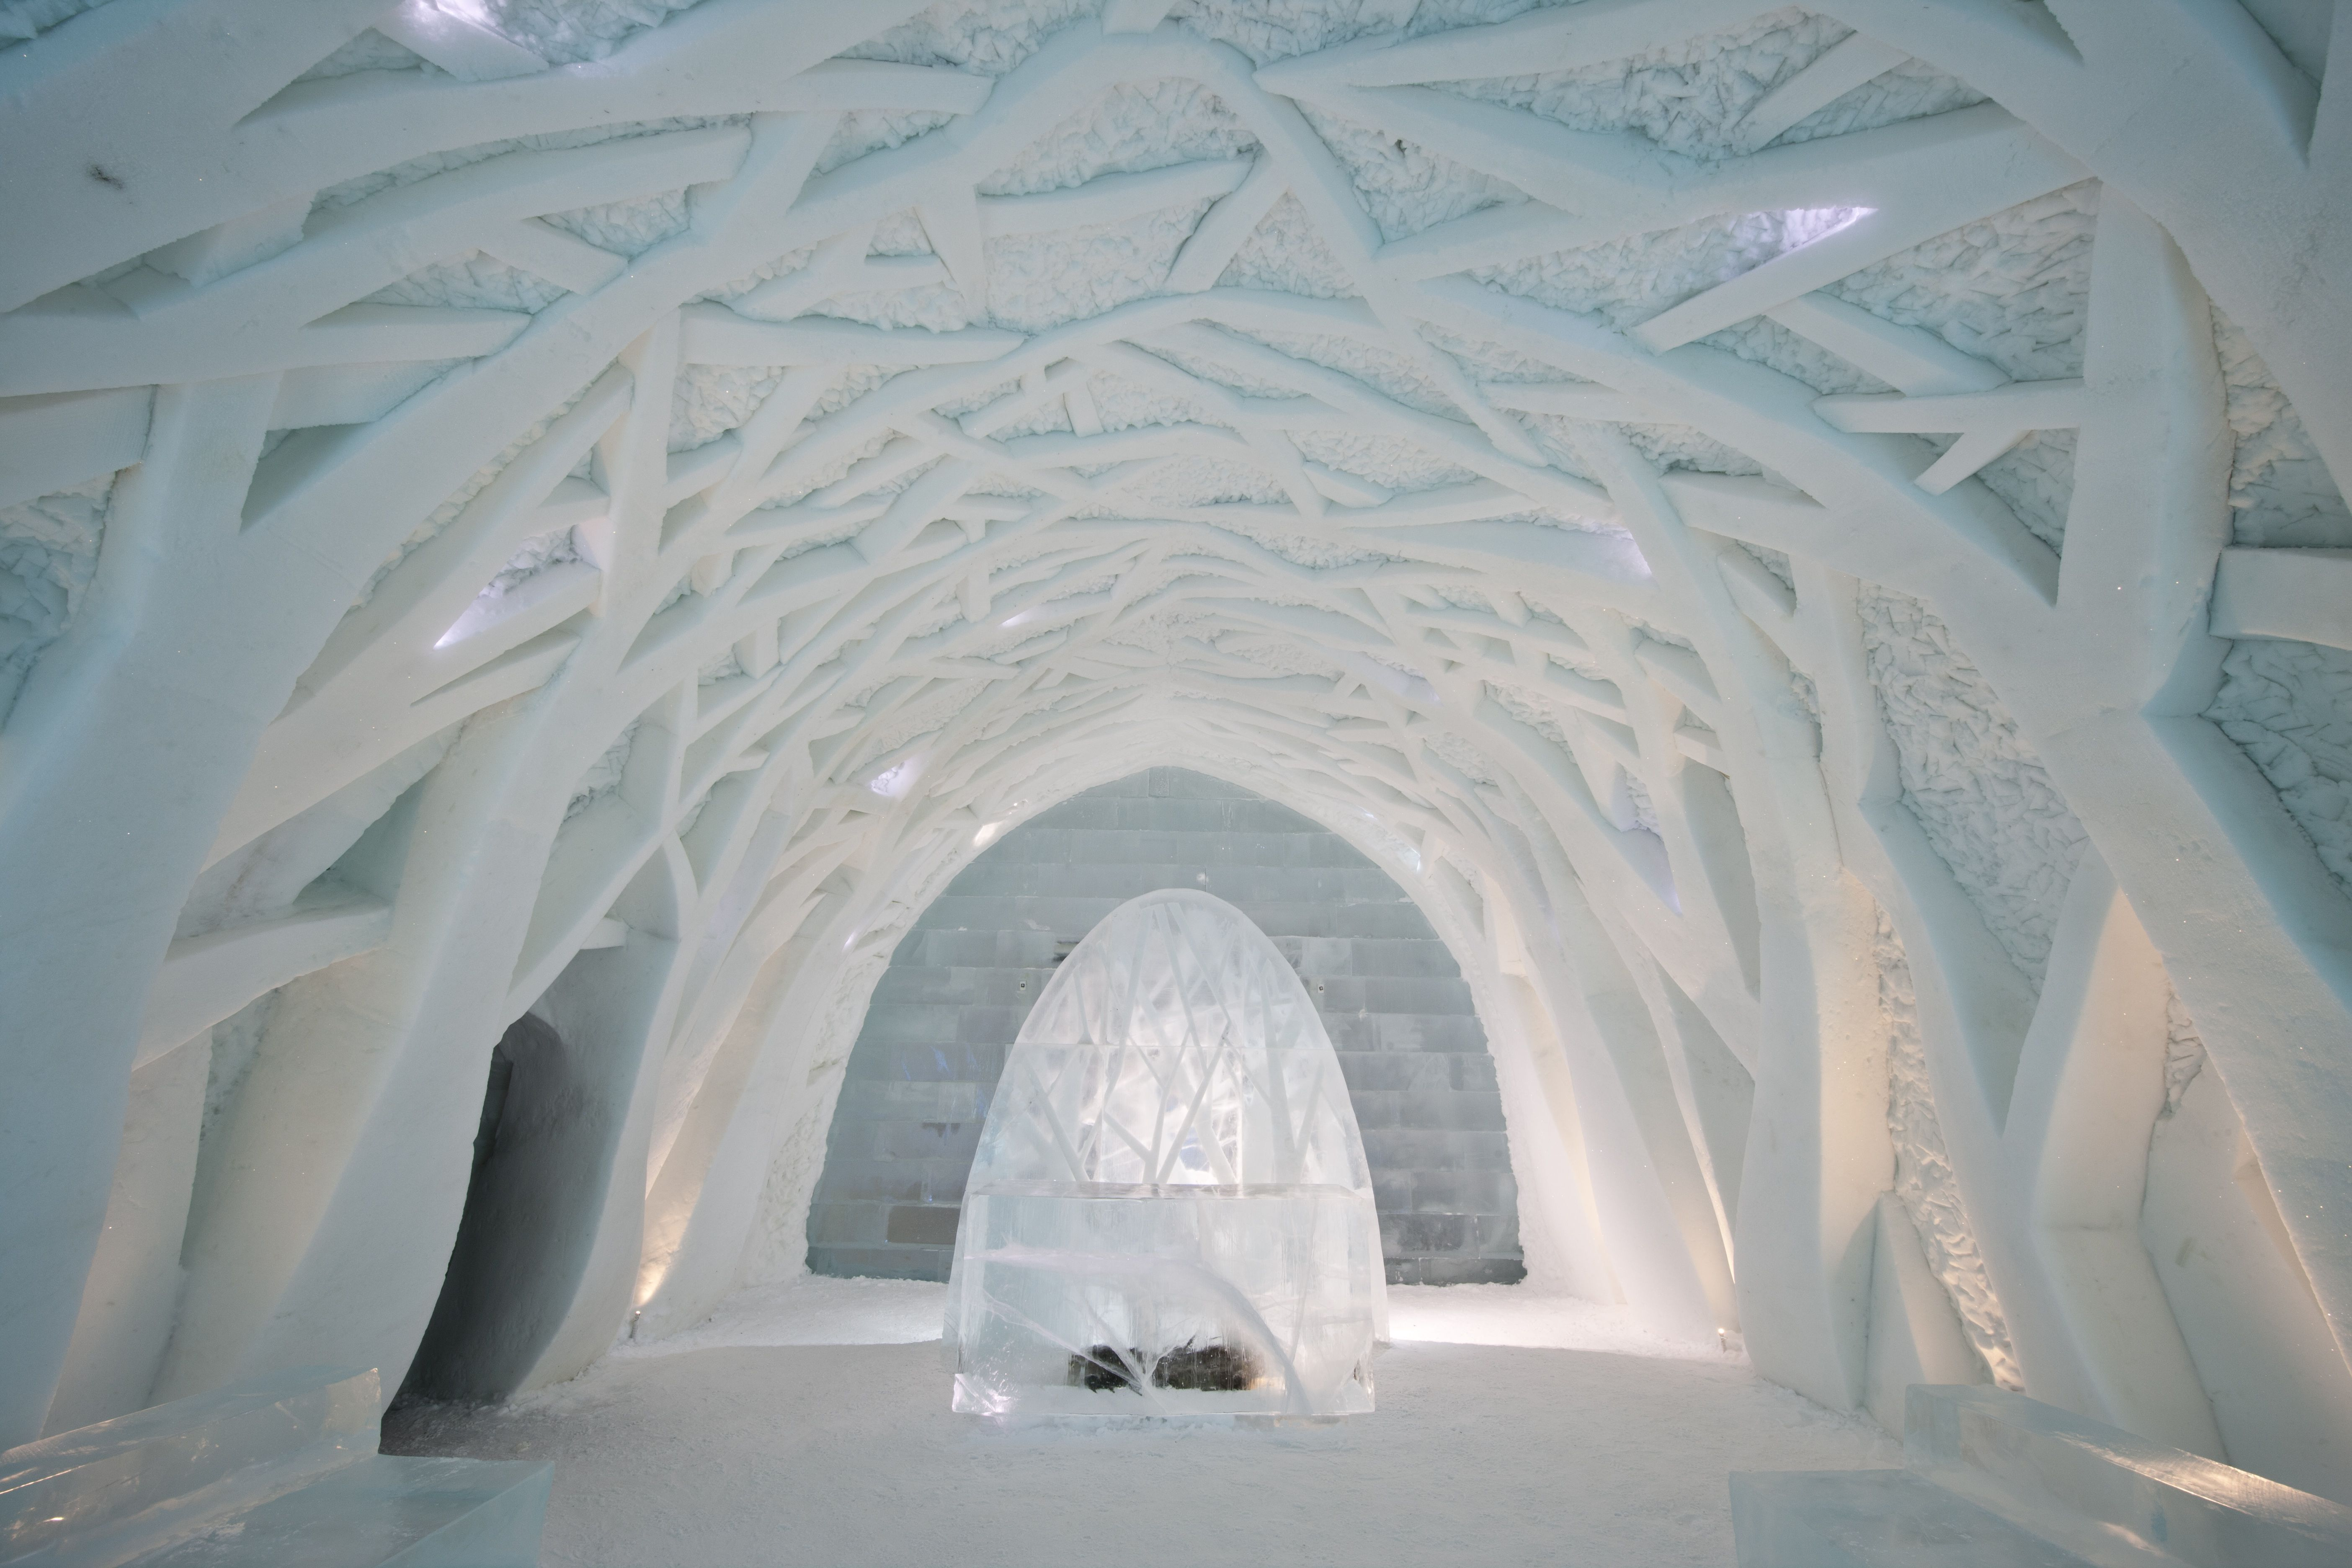 The Best Ice Hotels in Scandinavia